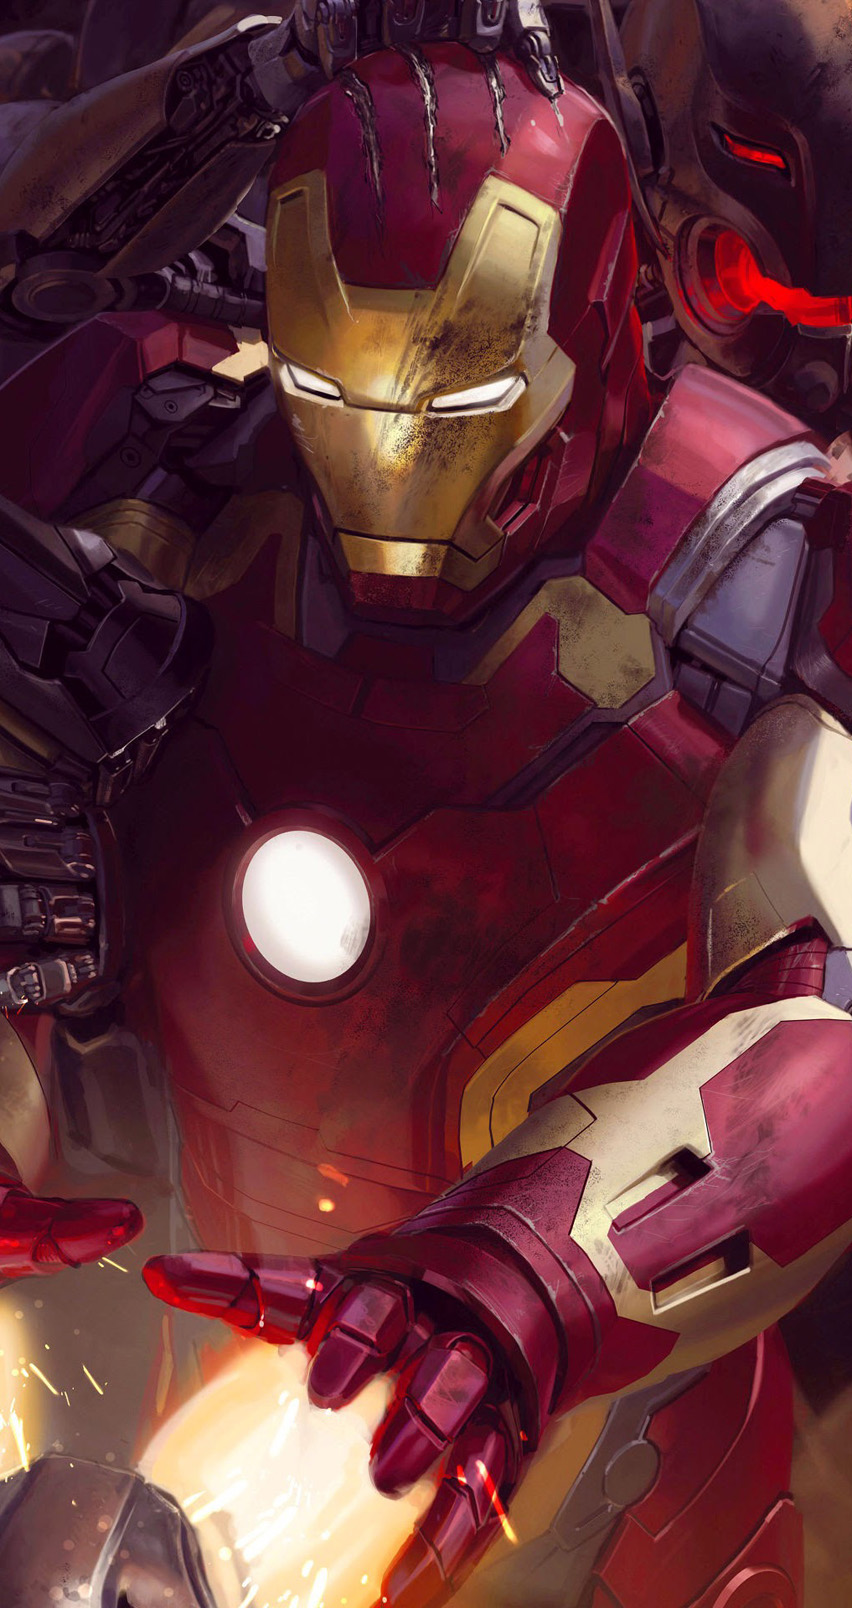 Avengers-Age-of-Ultron-Ironman-for-iPhone-s-iPhone-Plus-Tap-to-see-more-Avengers-wallpaper-wp3003390